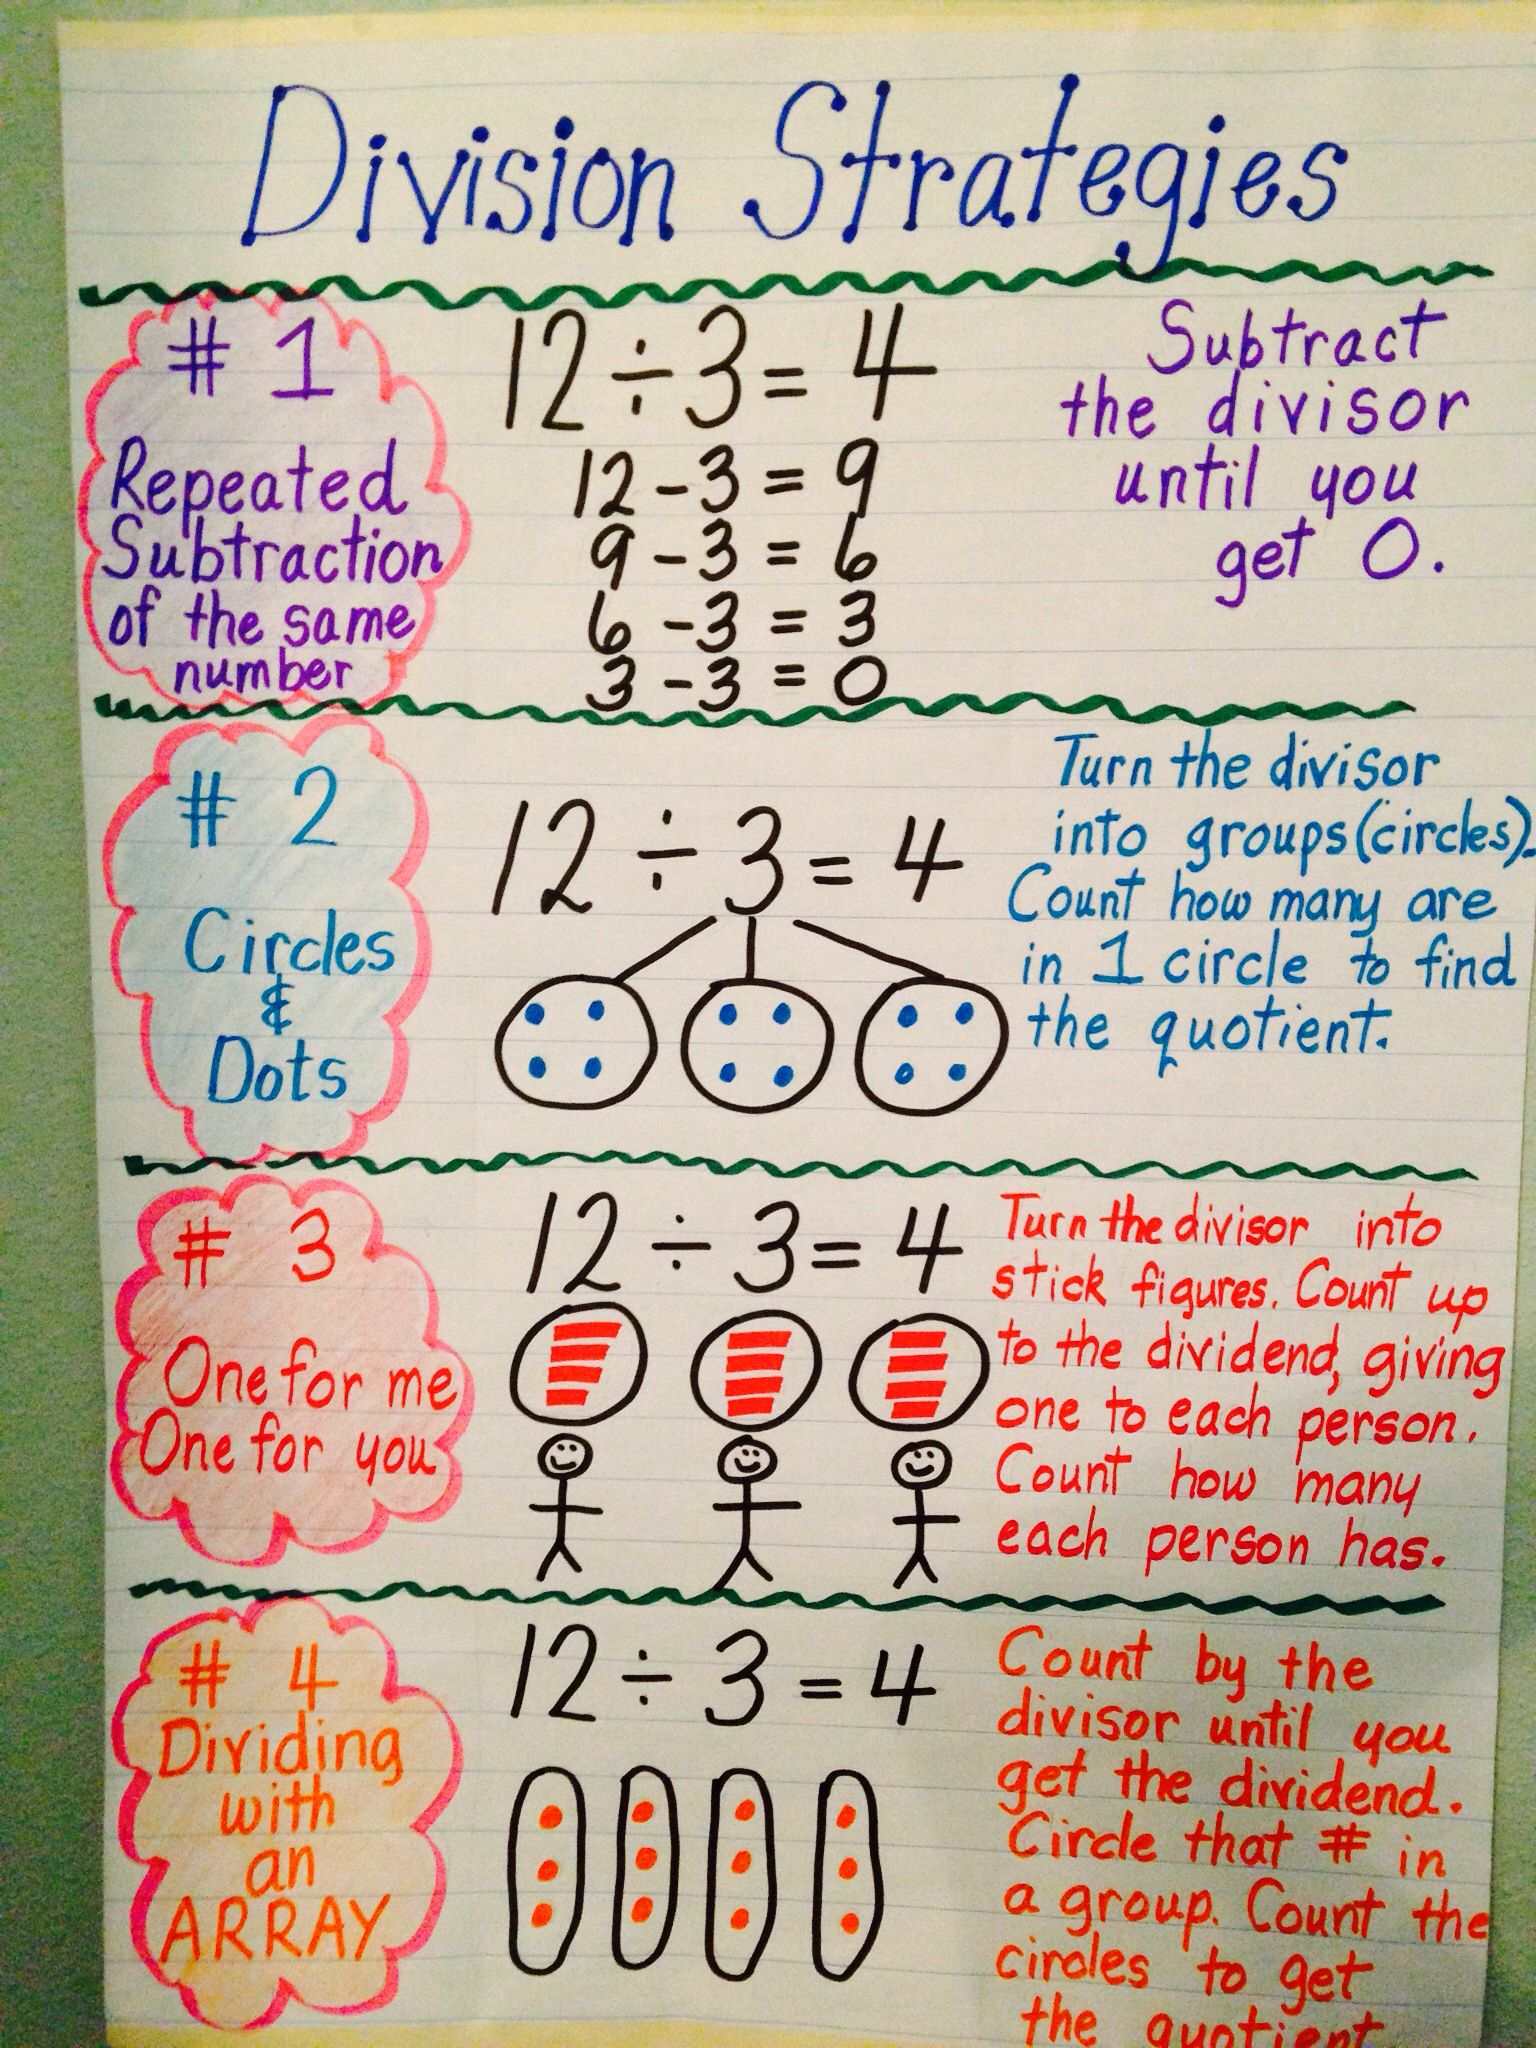 Worksheet How To Teach Simple Division probably gonna need this for jett and jocelynn hopefully it anchor chart idea to show students multiple strategies division i think would really help see what divi